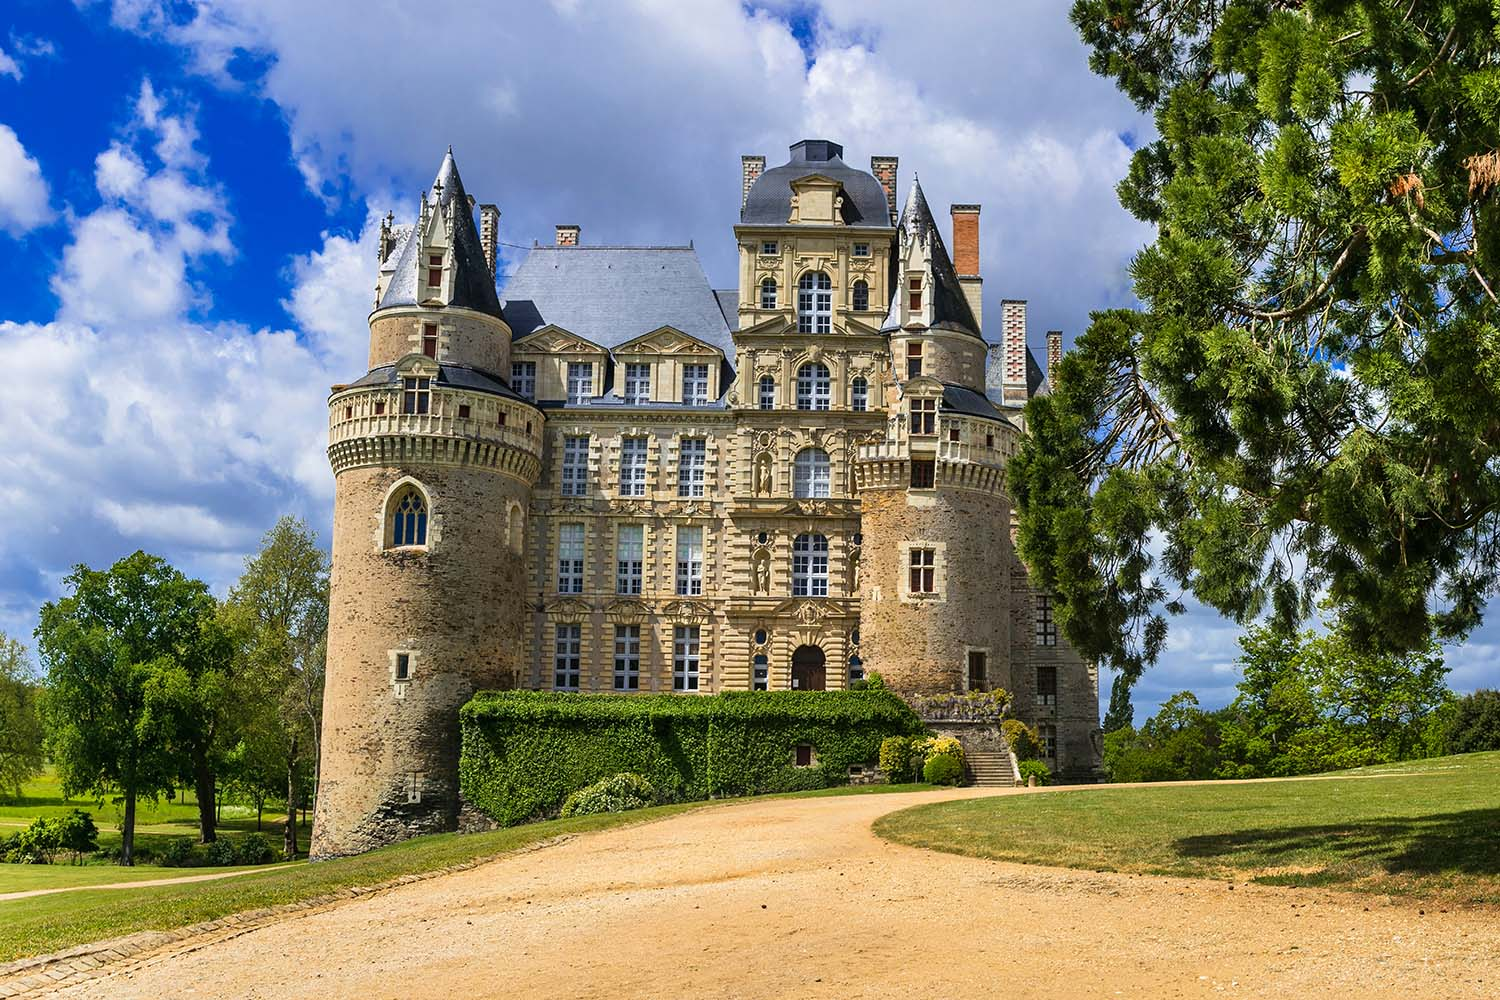 One of the most beautiful and mysterious castles of France - Chateau de Brissac, famous castles of Loire valley